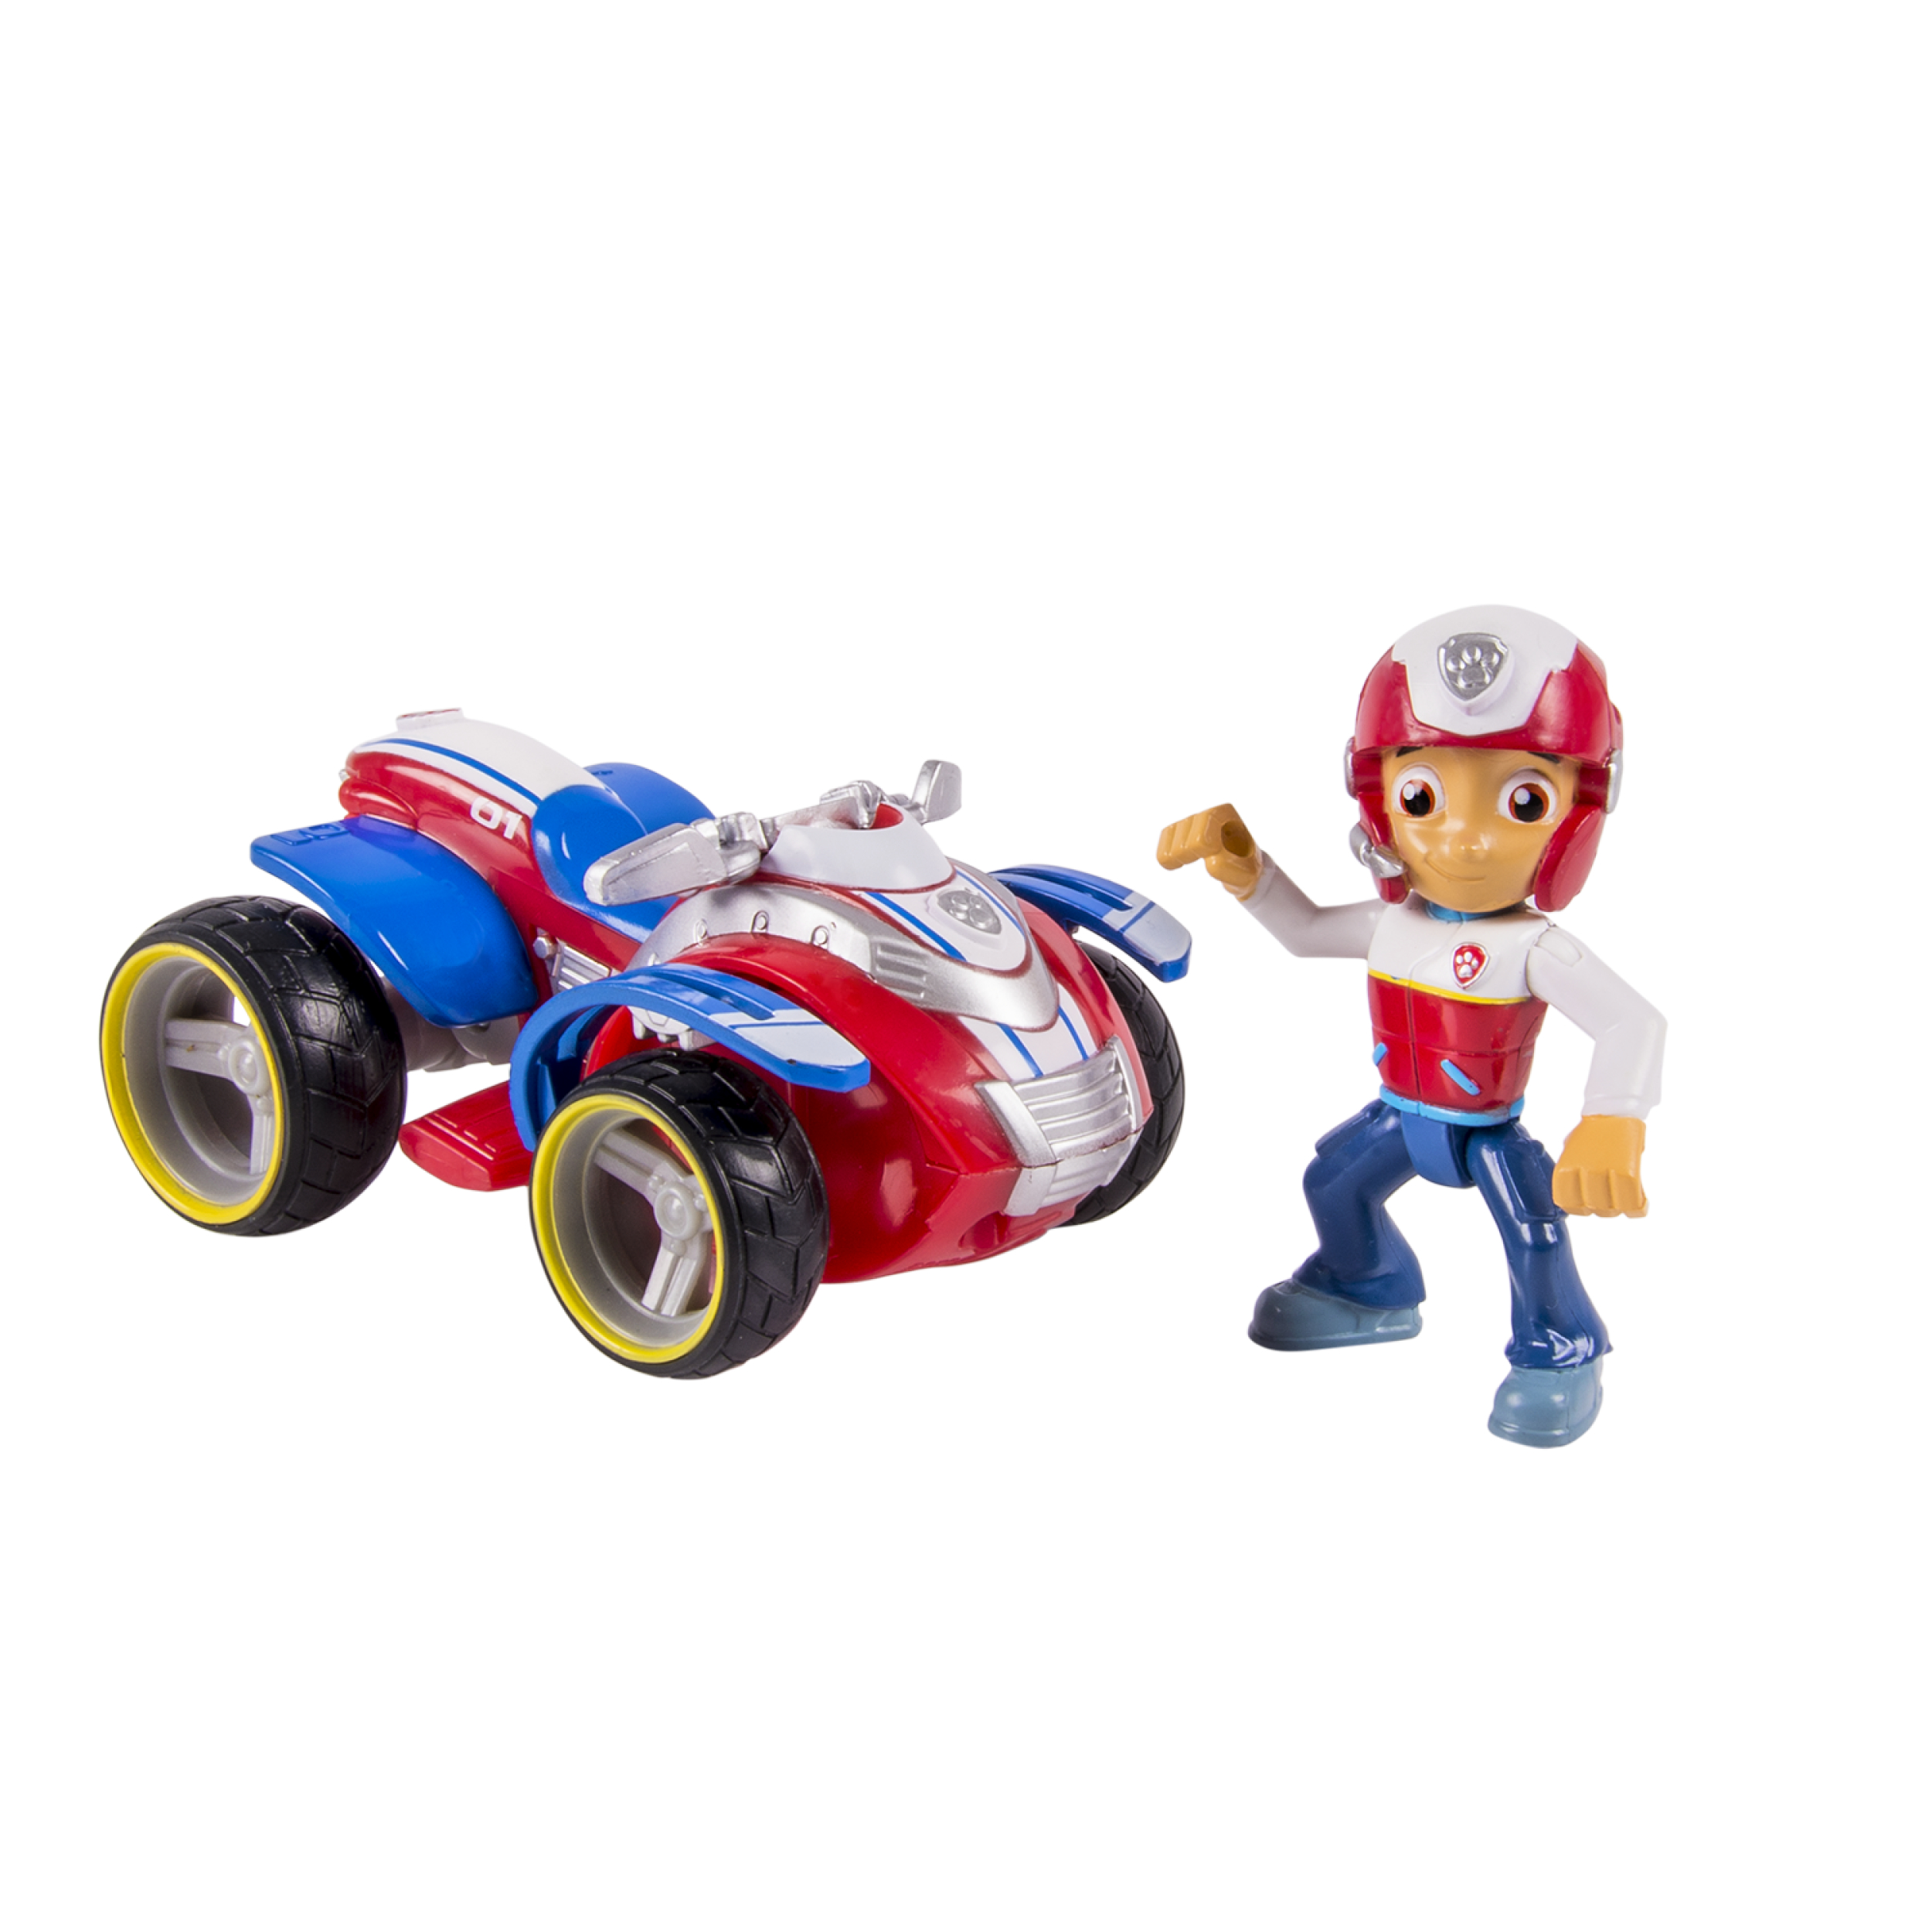 Paw Patrol Ryder's Rescue ATV, Vehicle and Figure